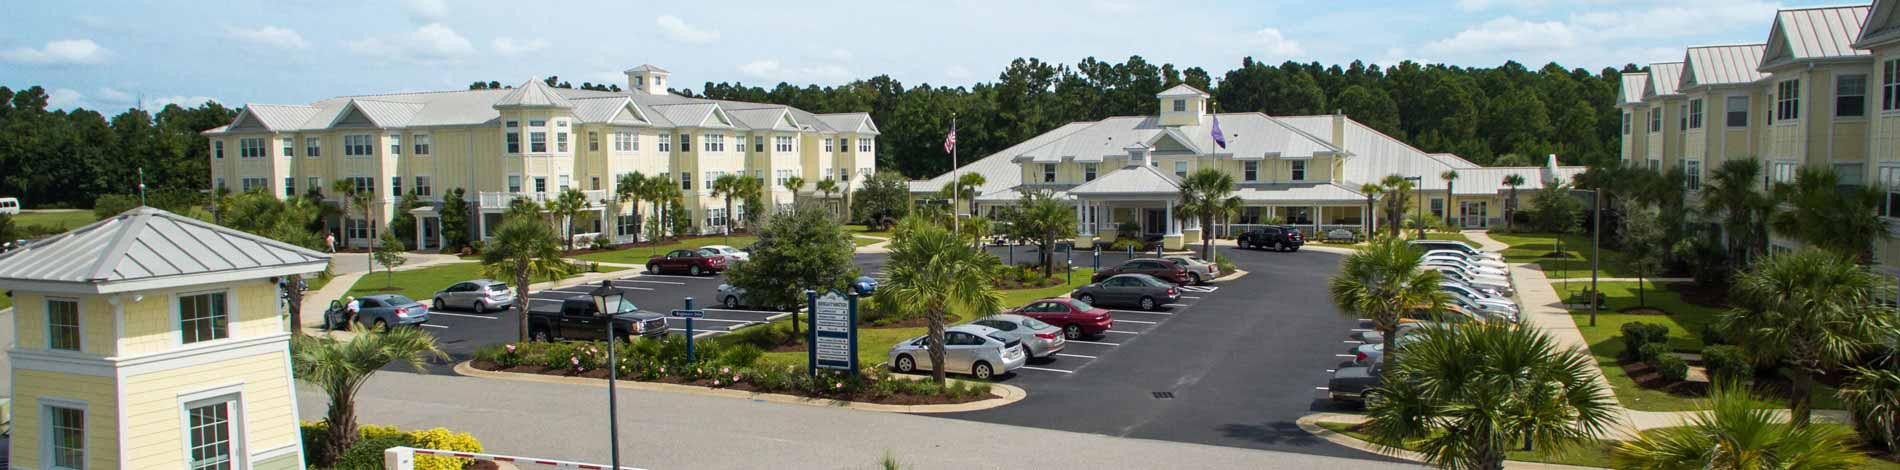 About Brightwater Community in Myrtle Beach, SC